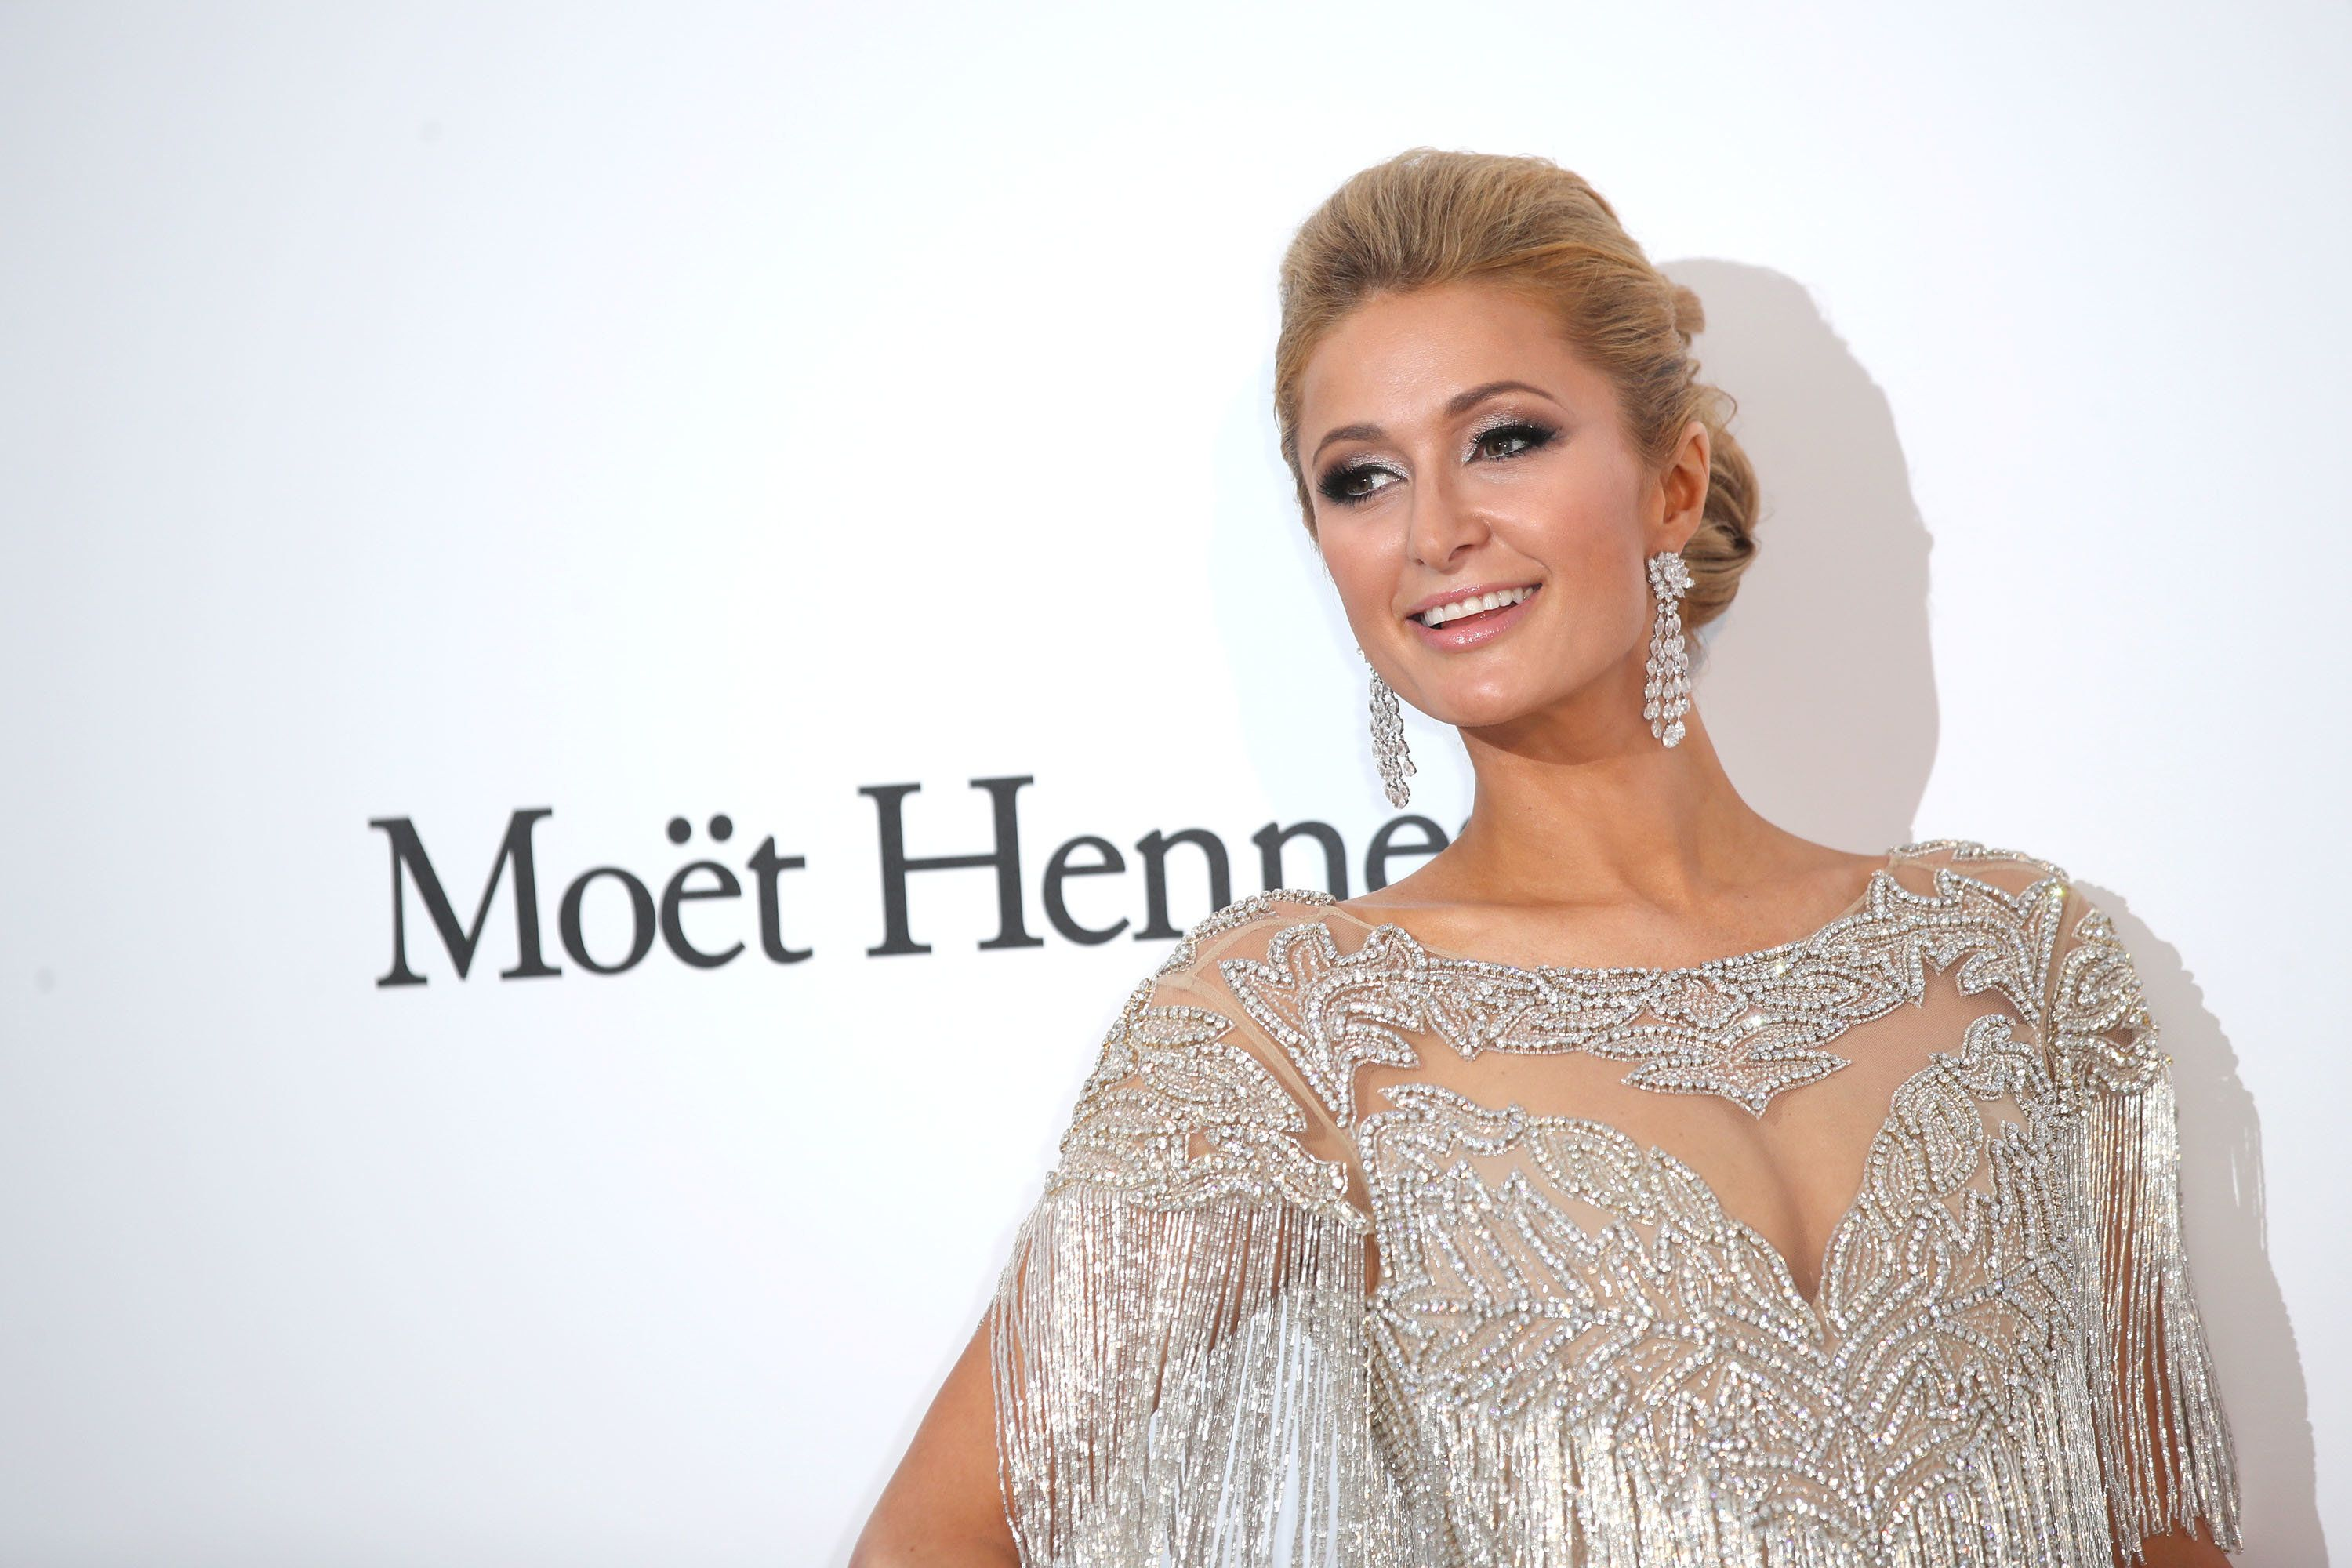 Paris Hilton arrives at the amfAR Gala in Cannes on May 25.